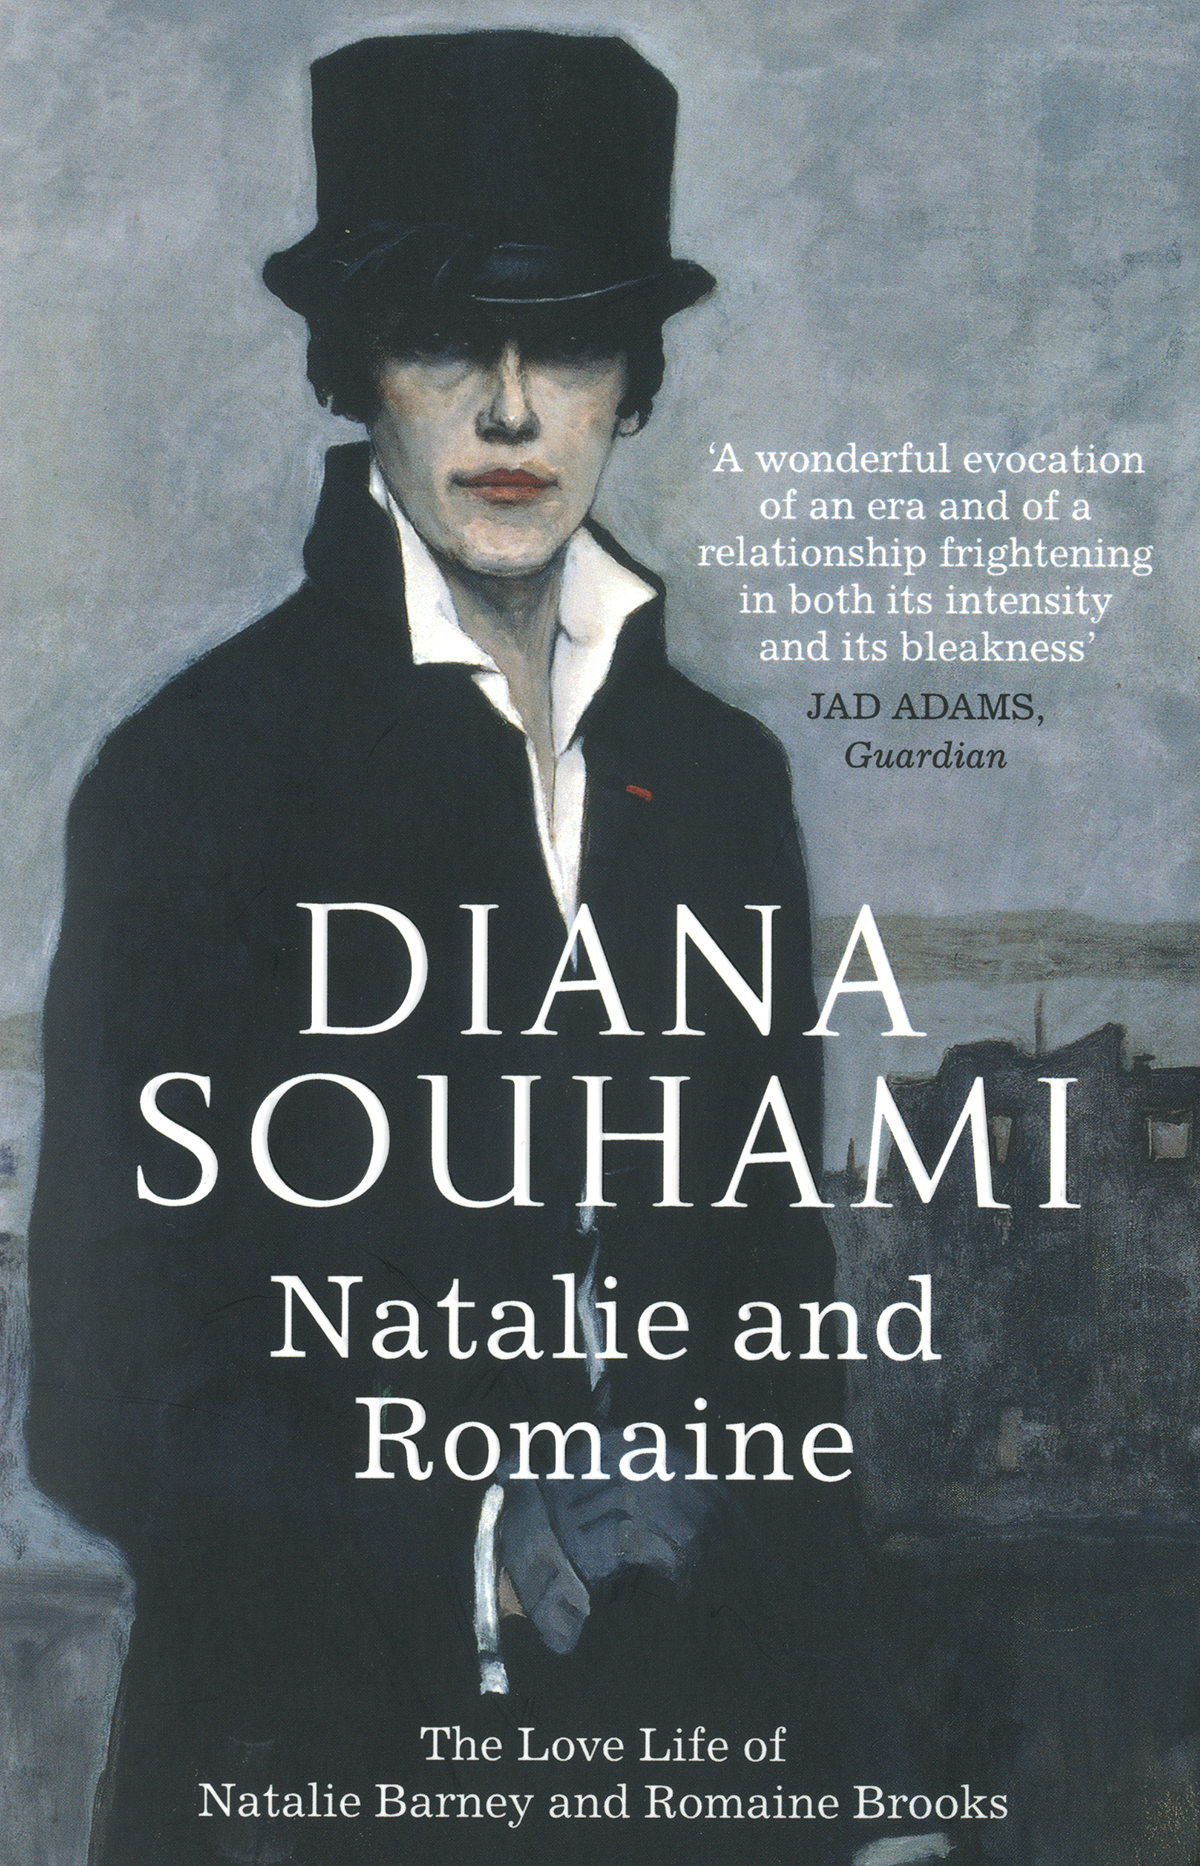 'Natalie and Romaine' by Diana Souhami